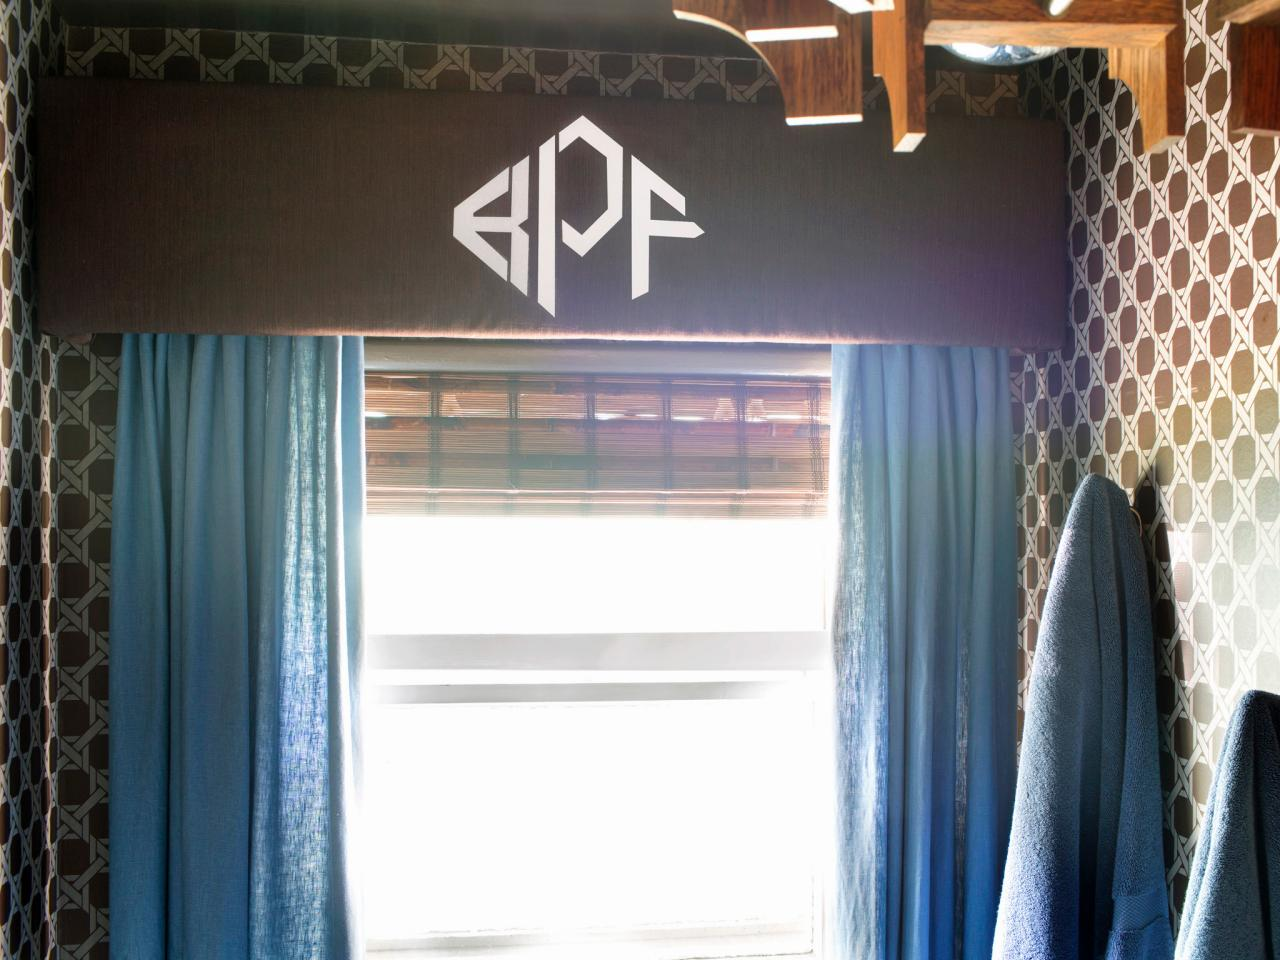 Stenciled Monogram Home Decorating Accessories Ideas (View 8 of 10)